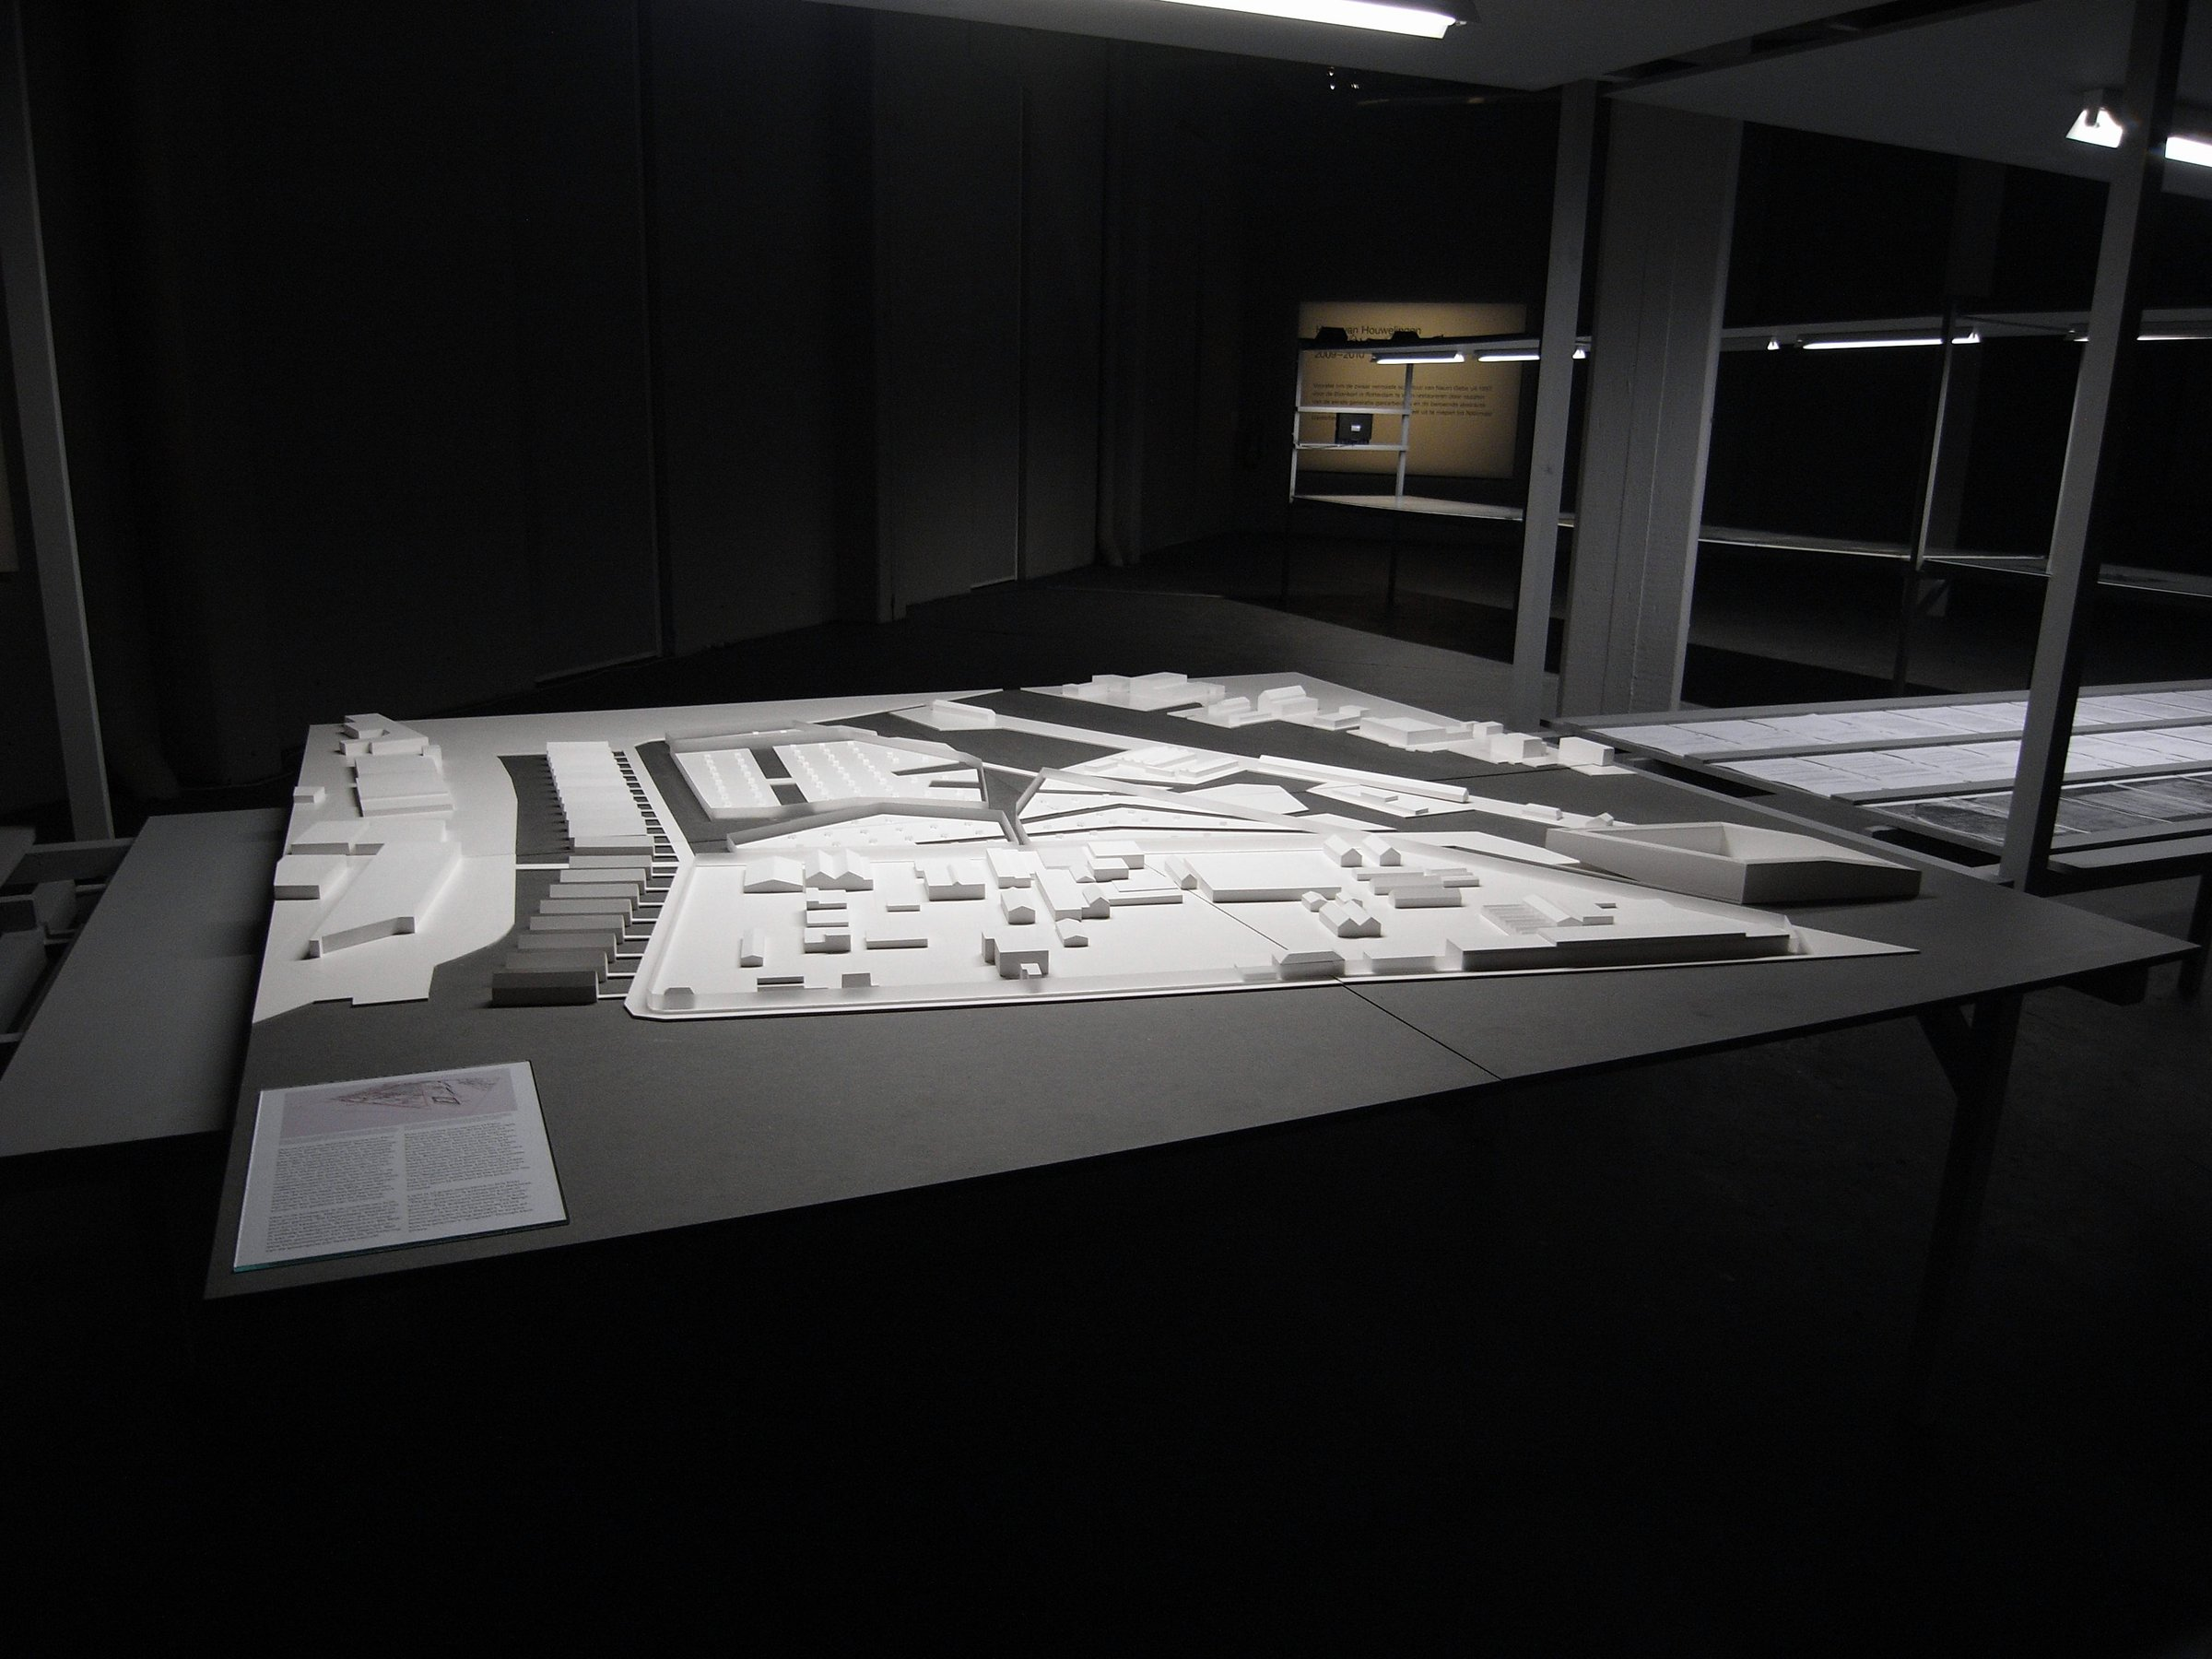 Closed Architecture (architectural model)